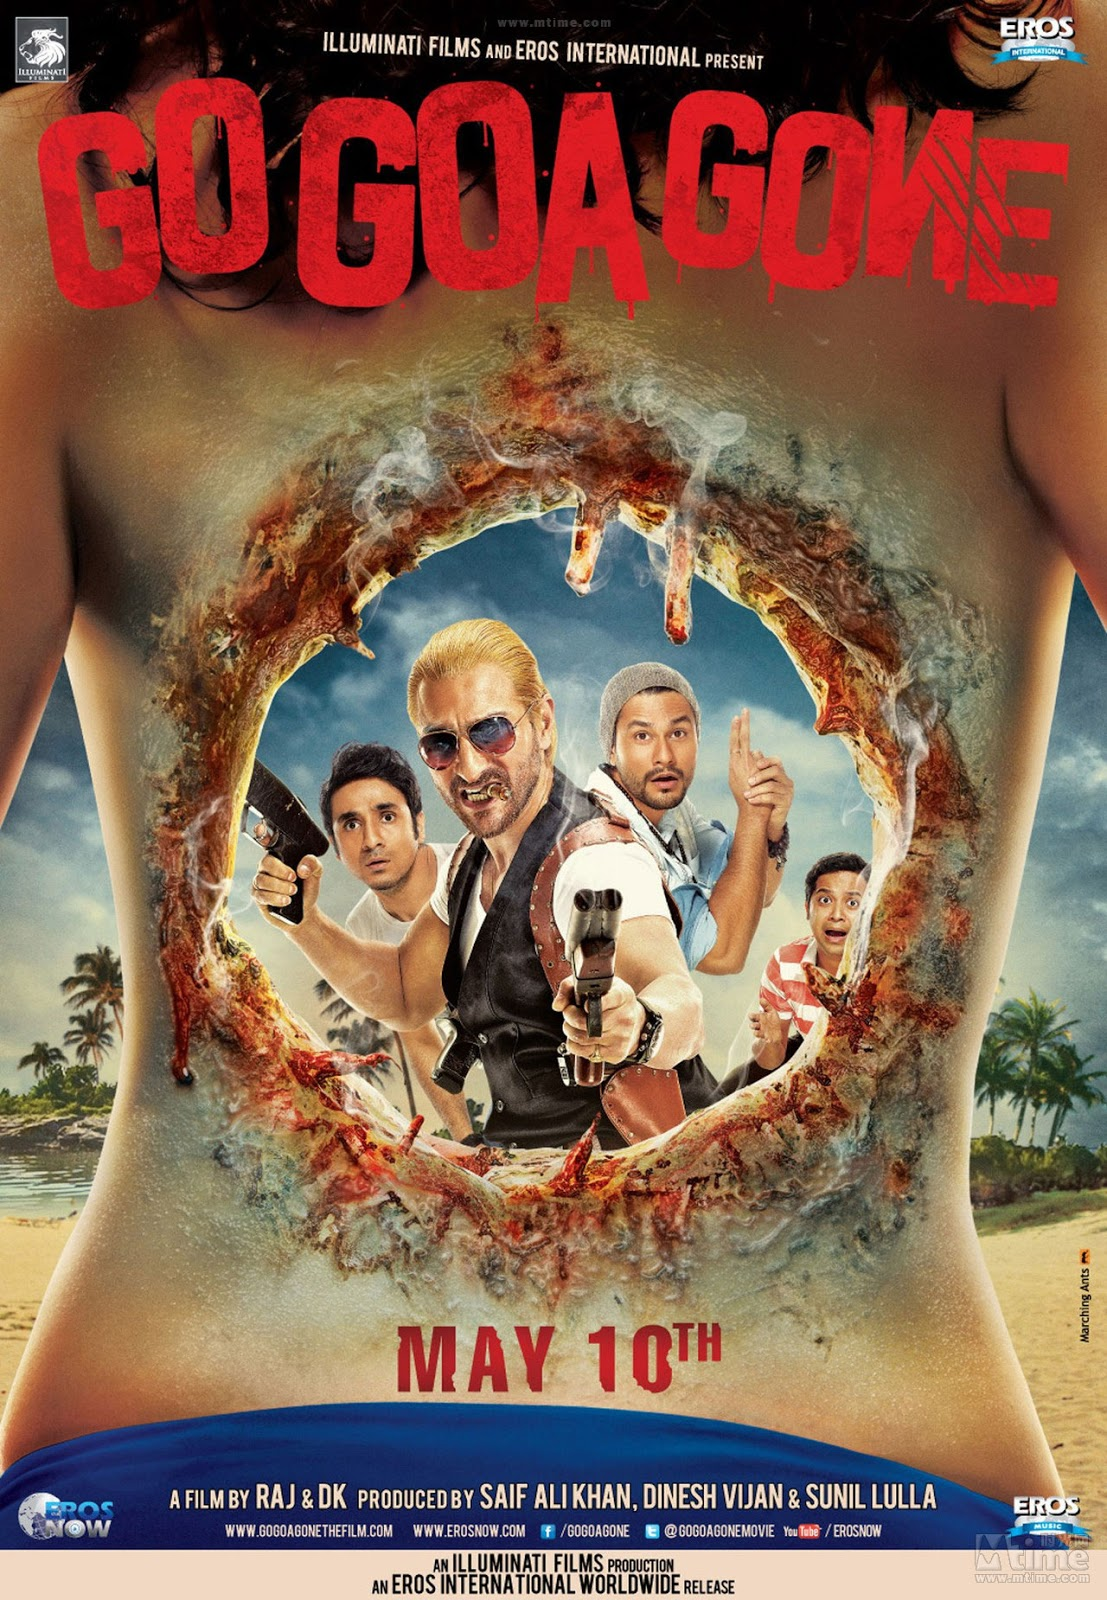 go-goa-gone-poster.jpg